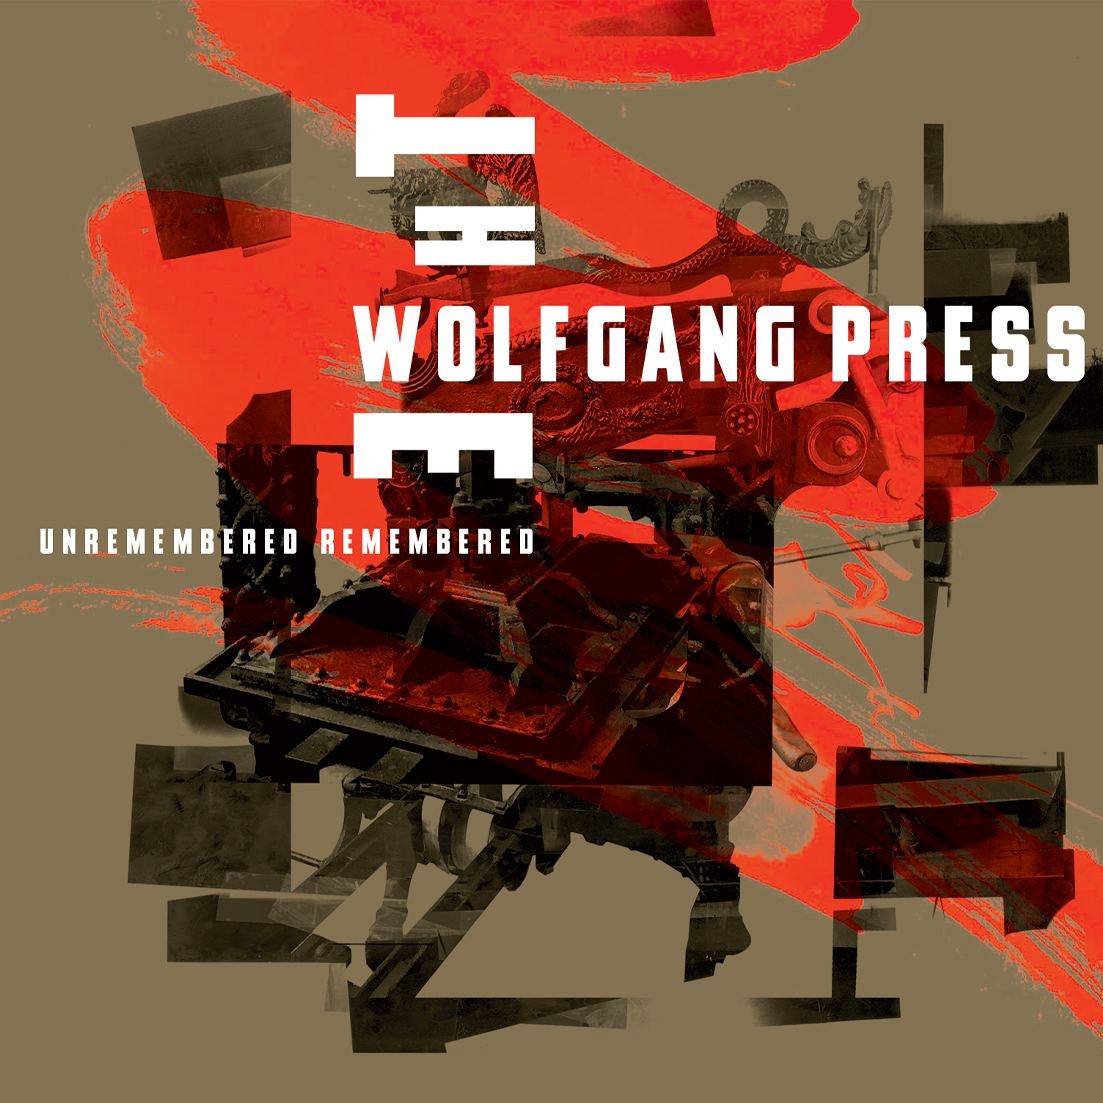 News – The Wolfgang Press  – Unremembered, Remembered